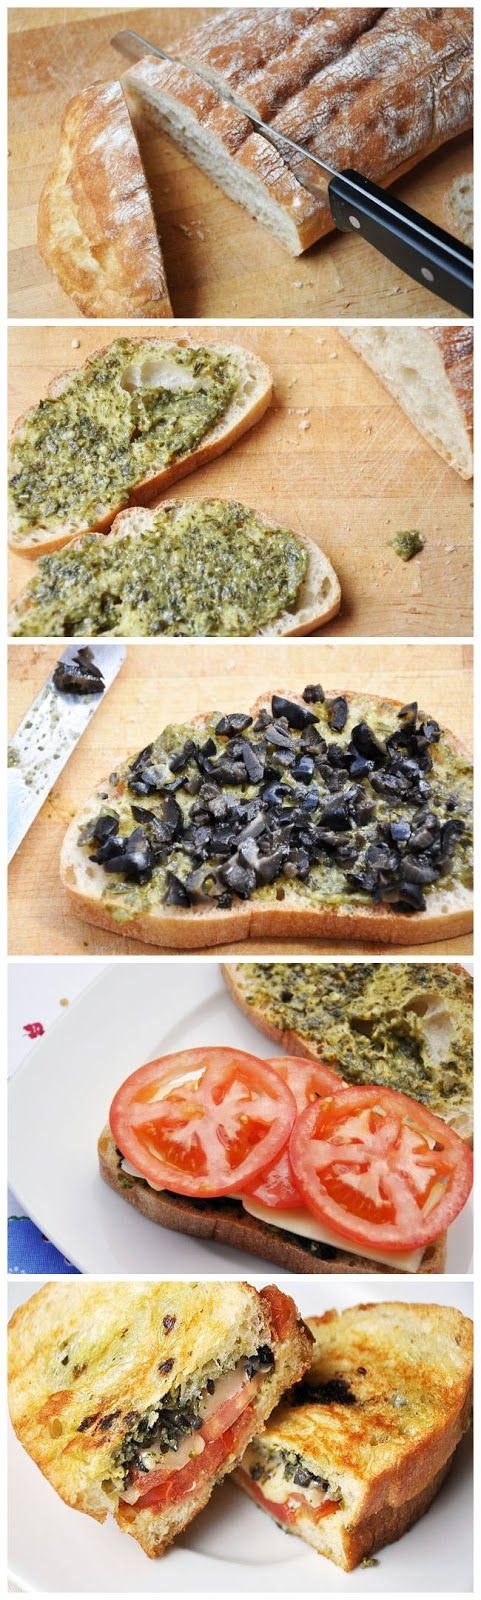 Pesto, Olives & Tomato Grilled Cheese